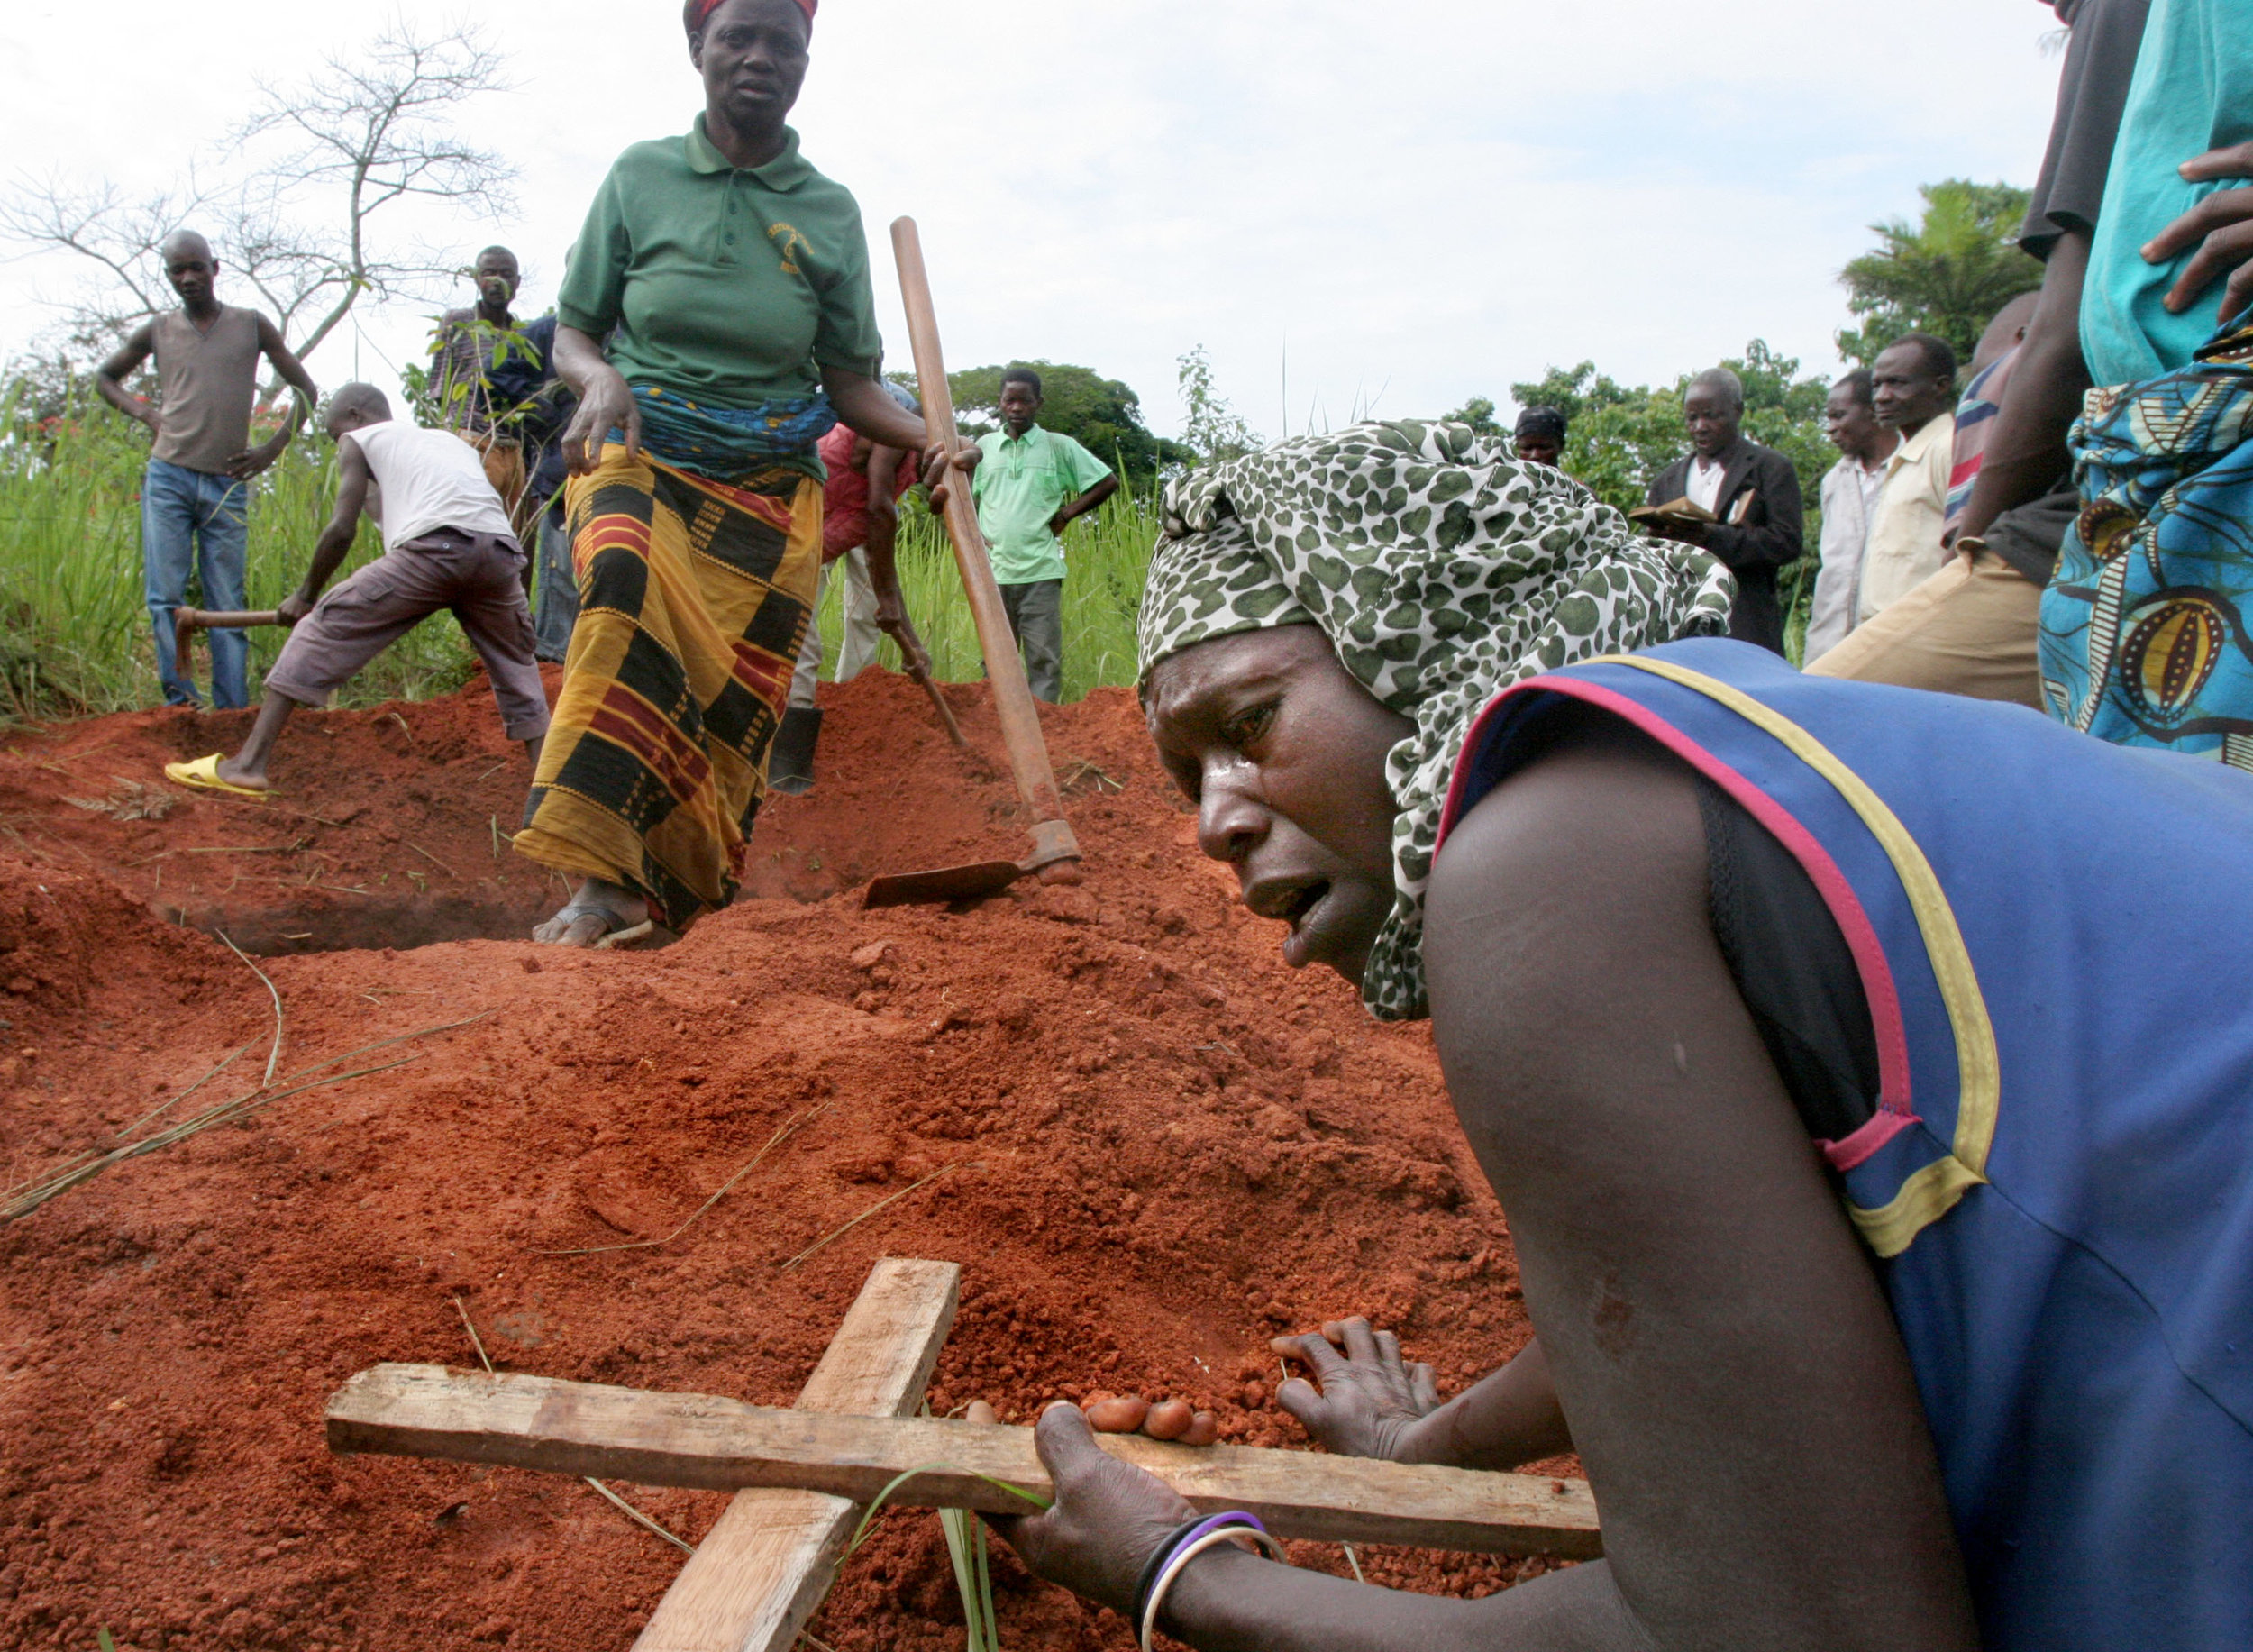 The mother of Louiza Nevish Bati, 23, who died of the Marburg virus in Uige, Angola, collapses on her grave. A cousin of Ebola, the Marburg virus is highly contagious, making any outbreak a cause for widespread fear and fascination in a world shrunk by international travel and trade. Marburg spreads through blood, vomit, semen and other bodily fluids. Even a cough can prove fatal for someone hit by a few drops of spittle. Corpses, teeming with the virus, are especially dangerous. A contaminated surface can be deadly -- the virus can find its way into someone's eyes, nose or mouth, or enter the bloodstream through a cut.